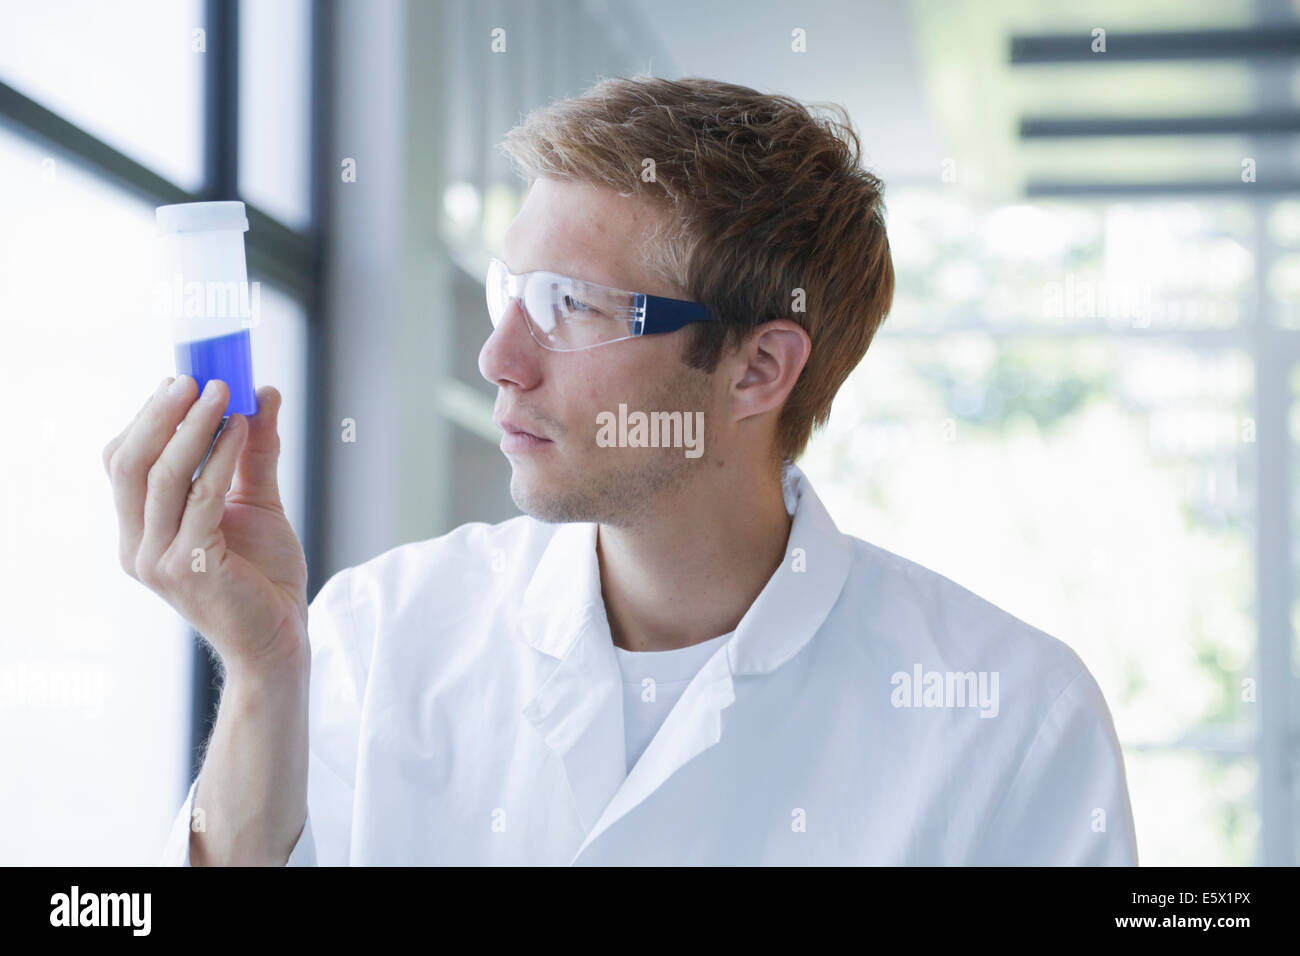 Male scientist analyzing sample in plastic bottle in lab - Stock Image